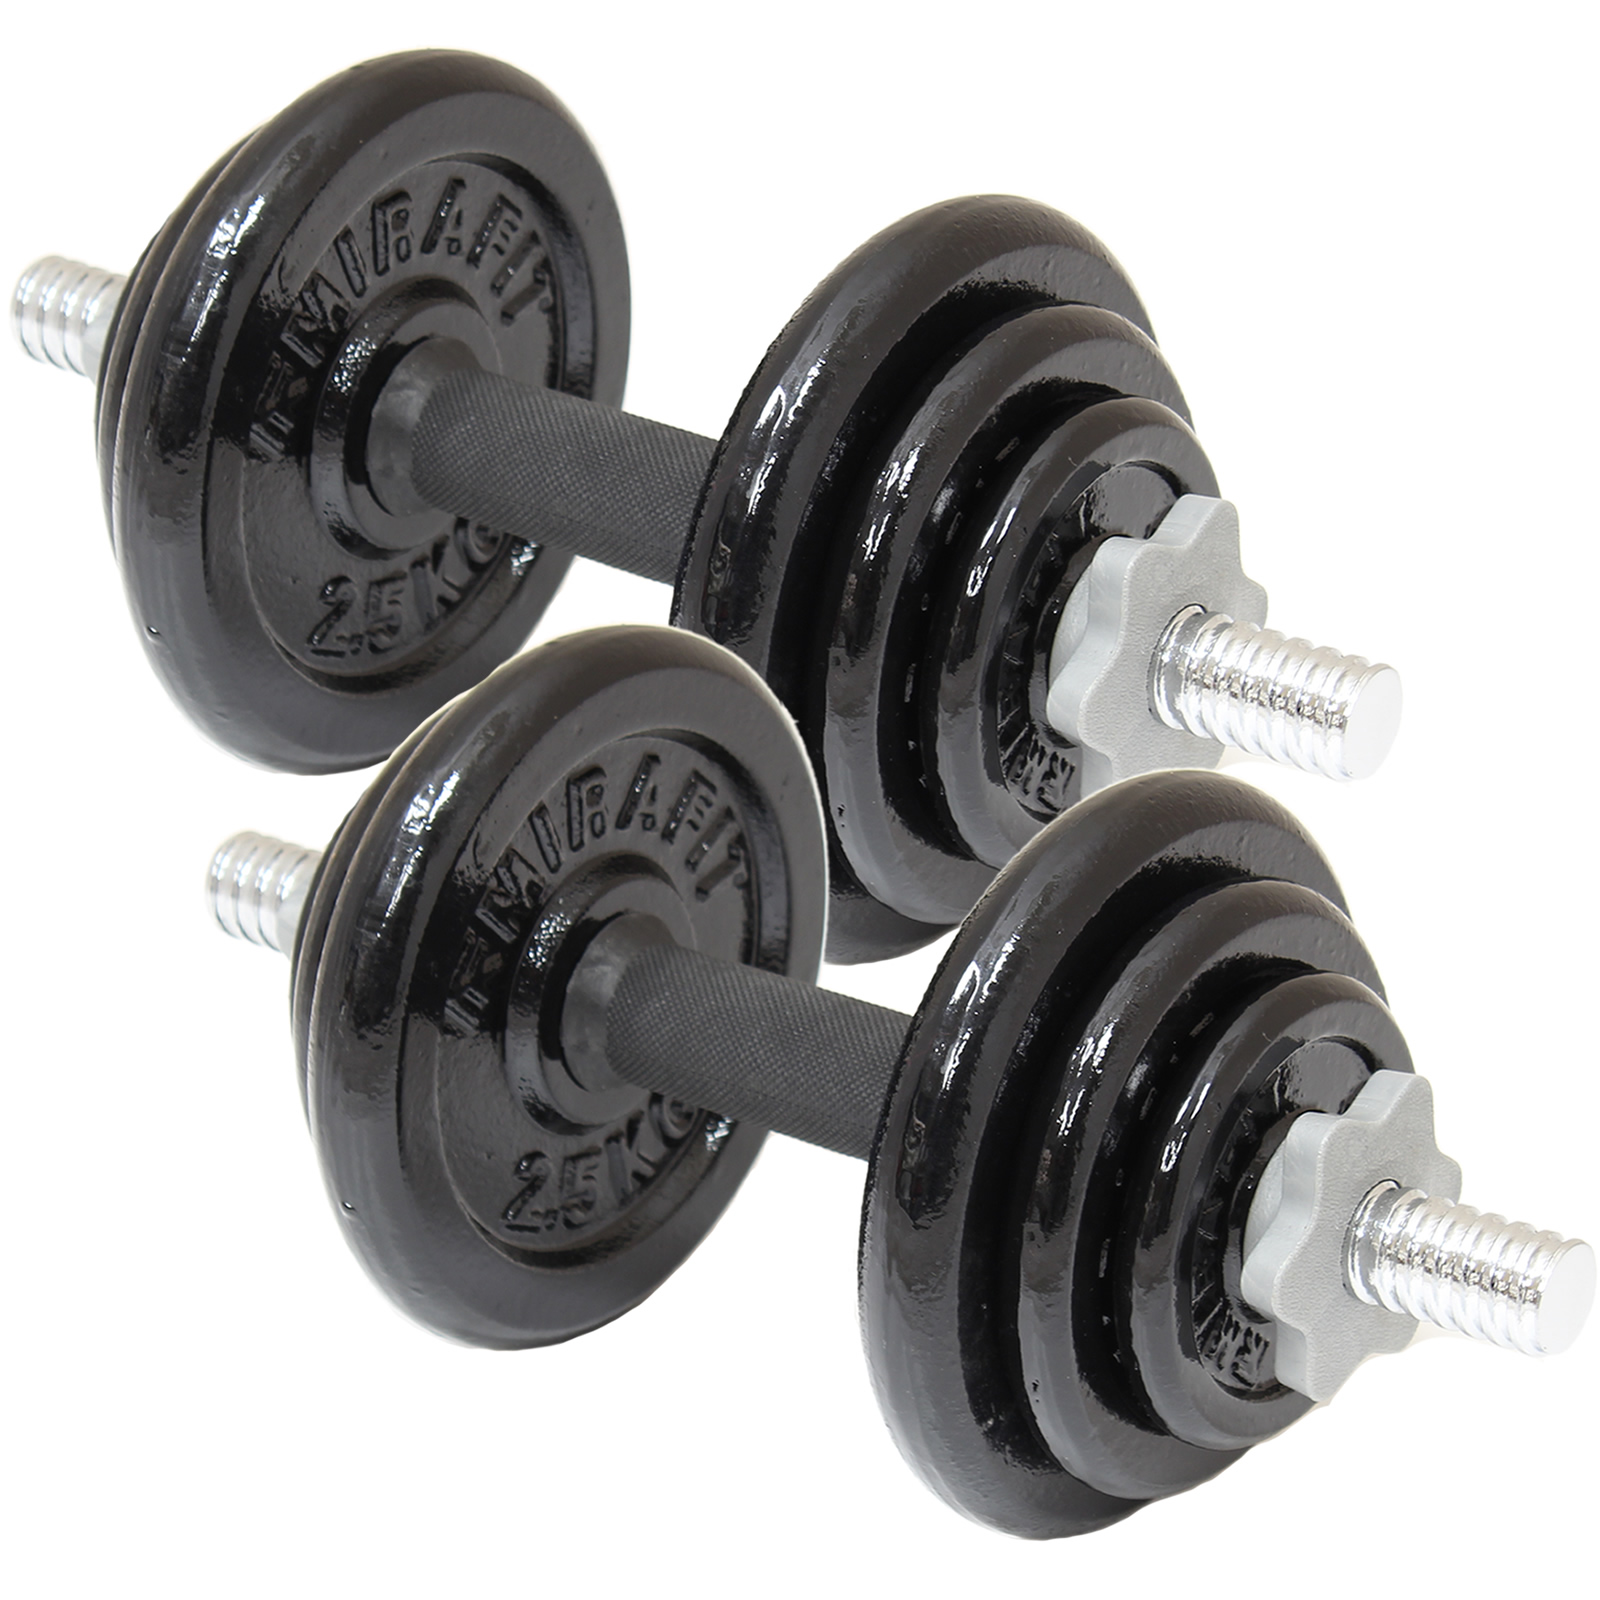 barbell weights - photo #41